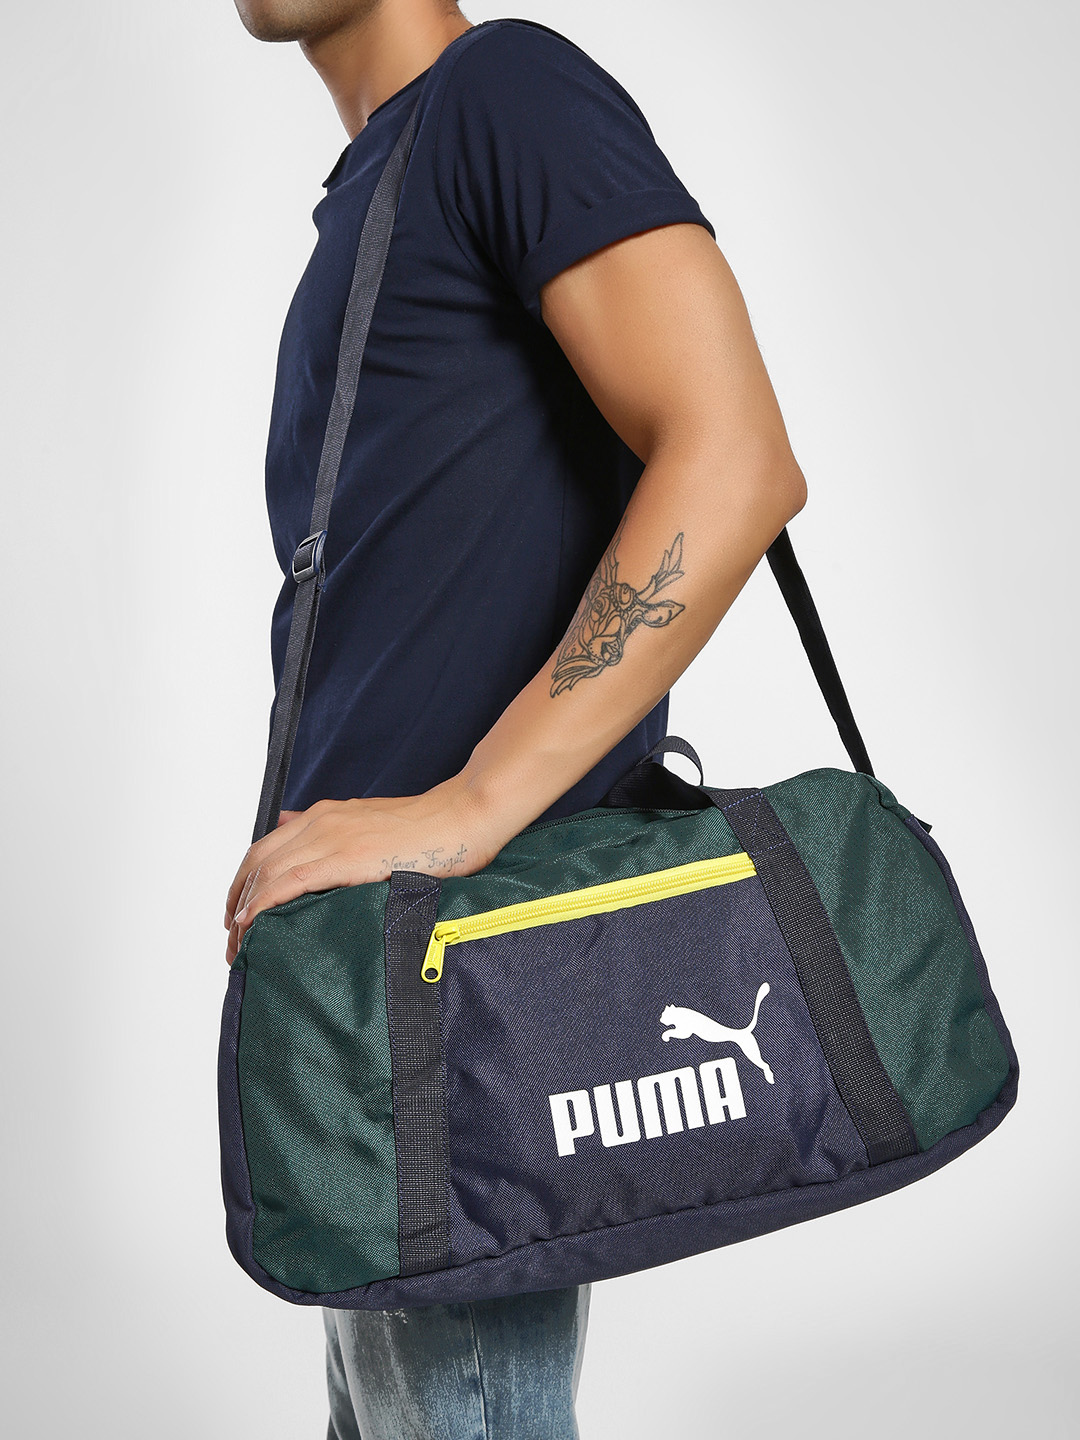 Puma Phase Gym Bag